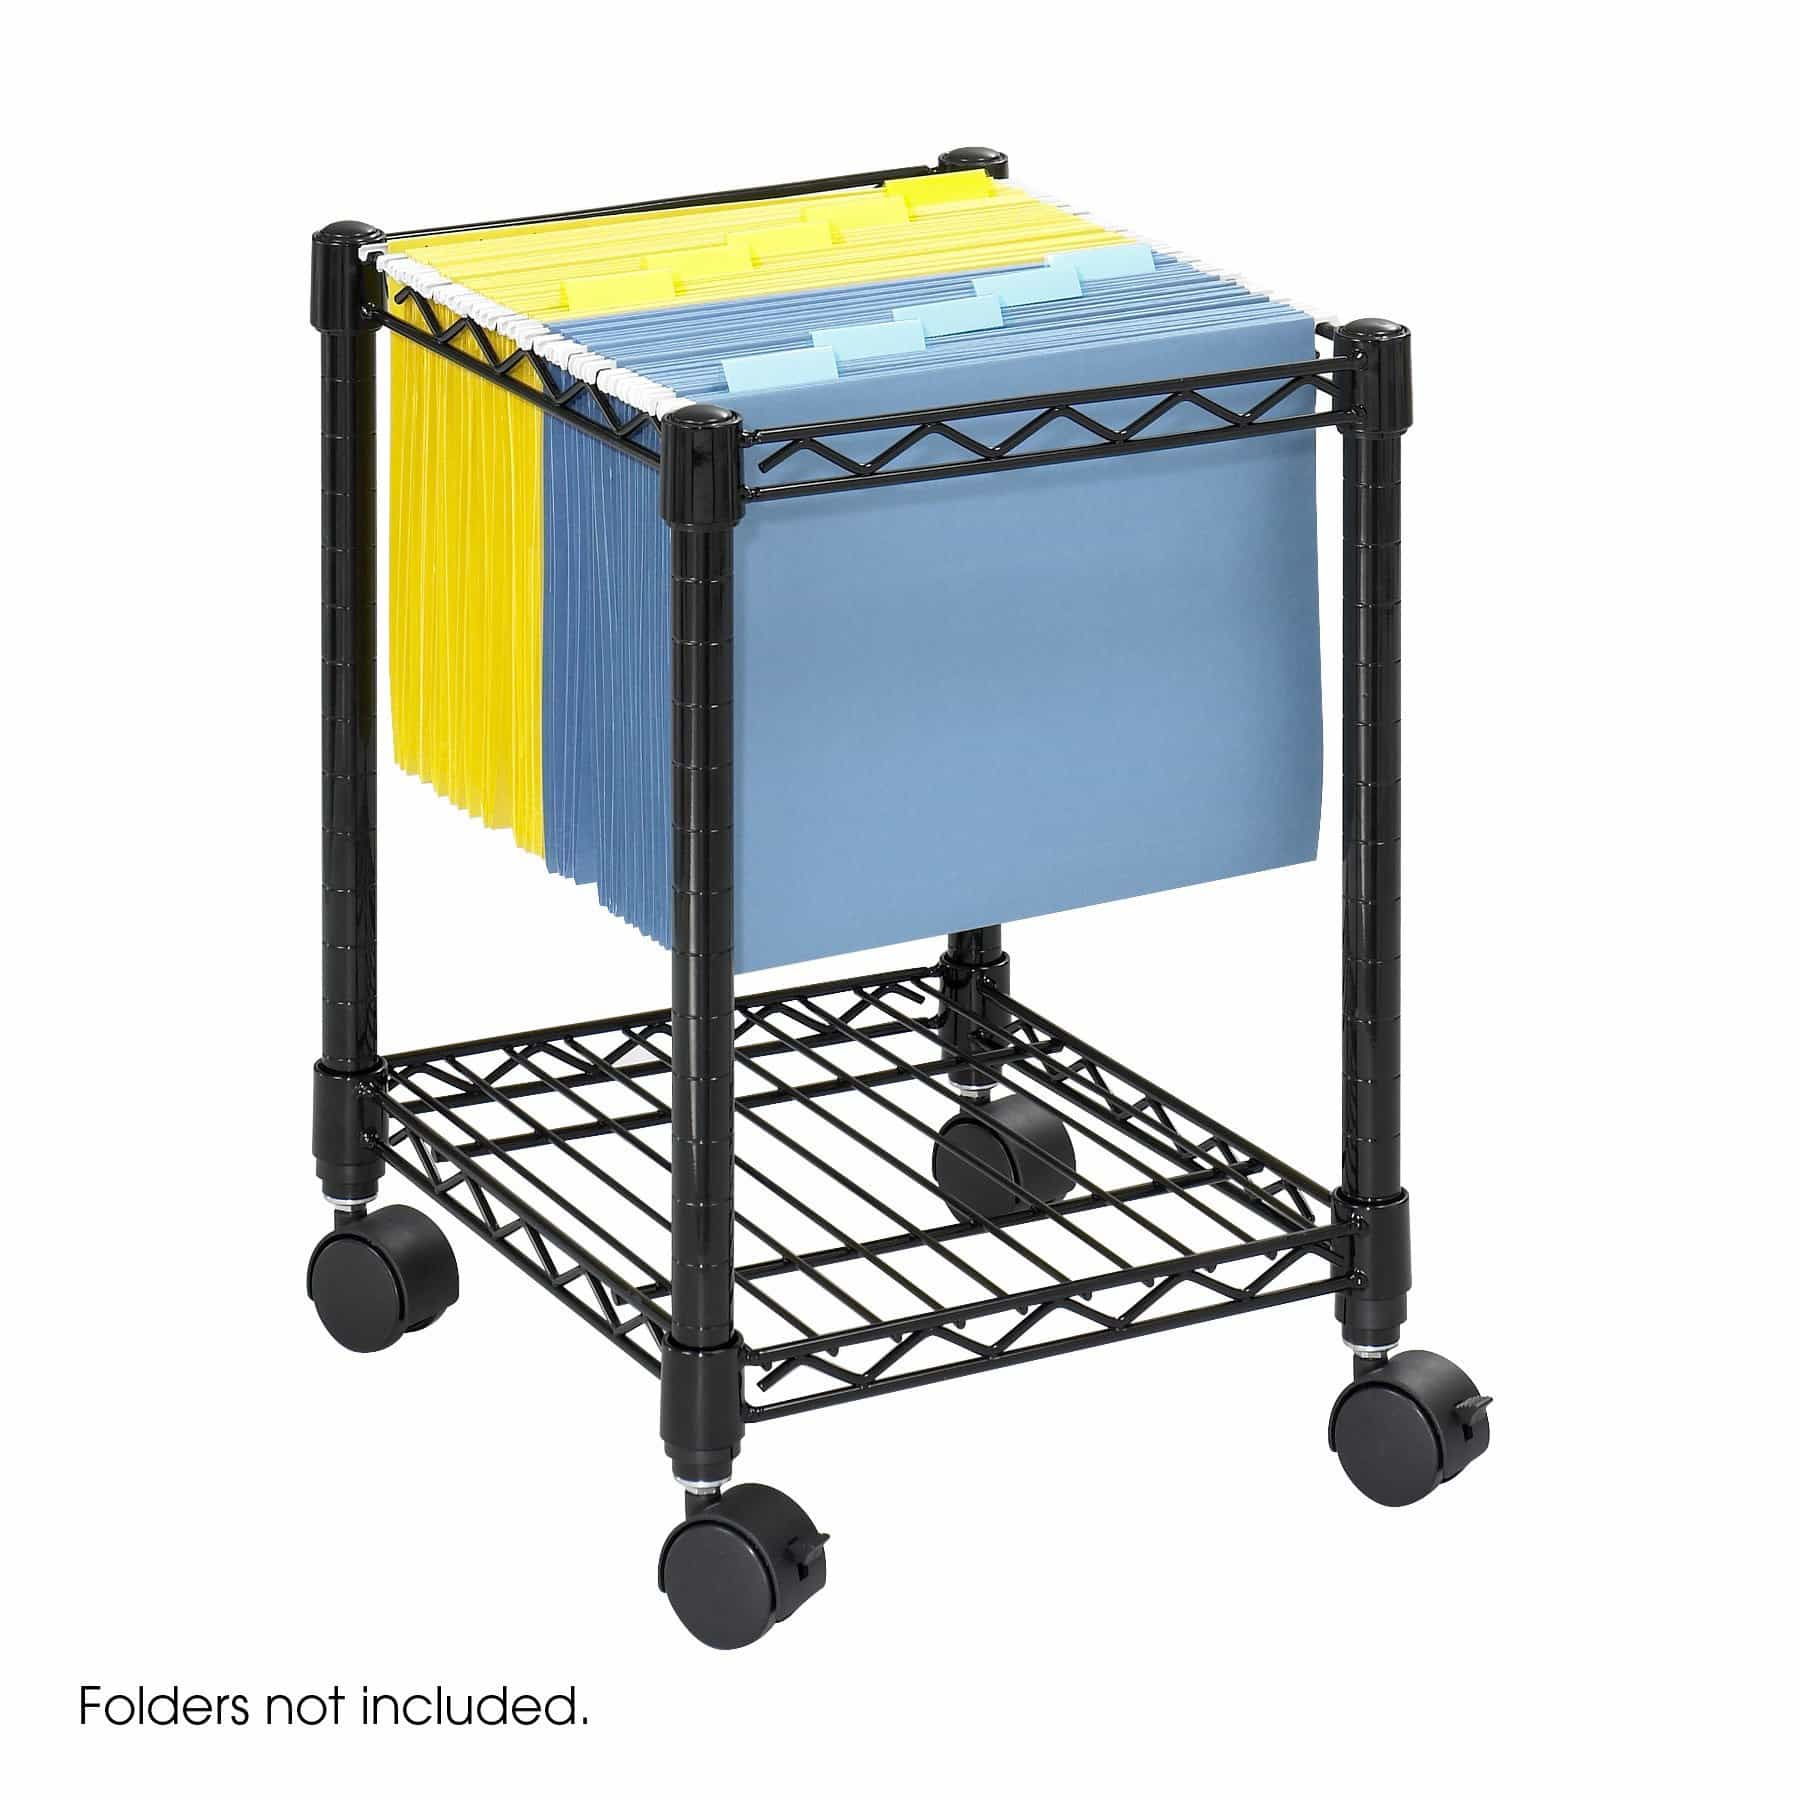 bedinhome - 5277BL Safco Compact Mobile durable steel wire four wheels Casters File Cart - Safco - Wire Filing Carts